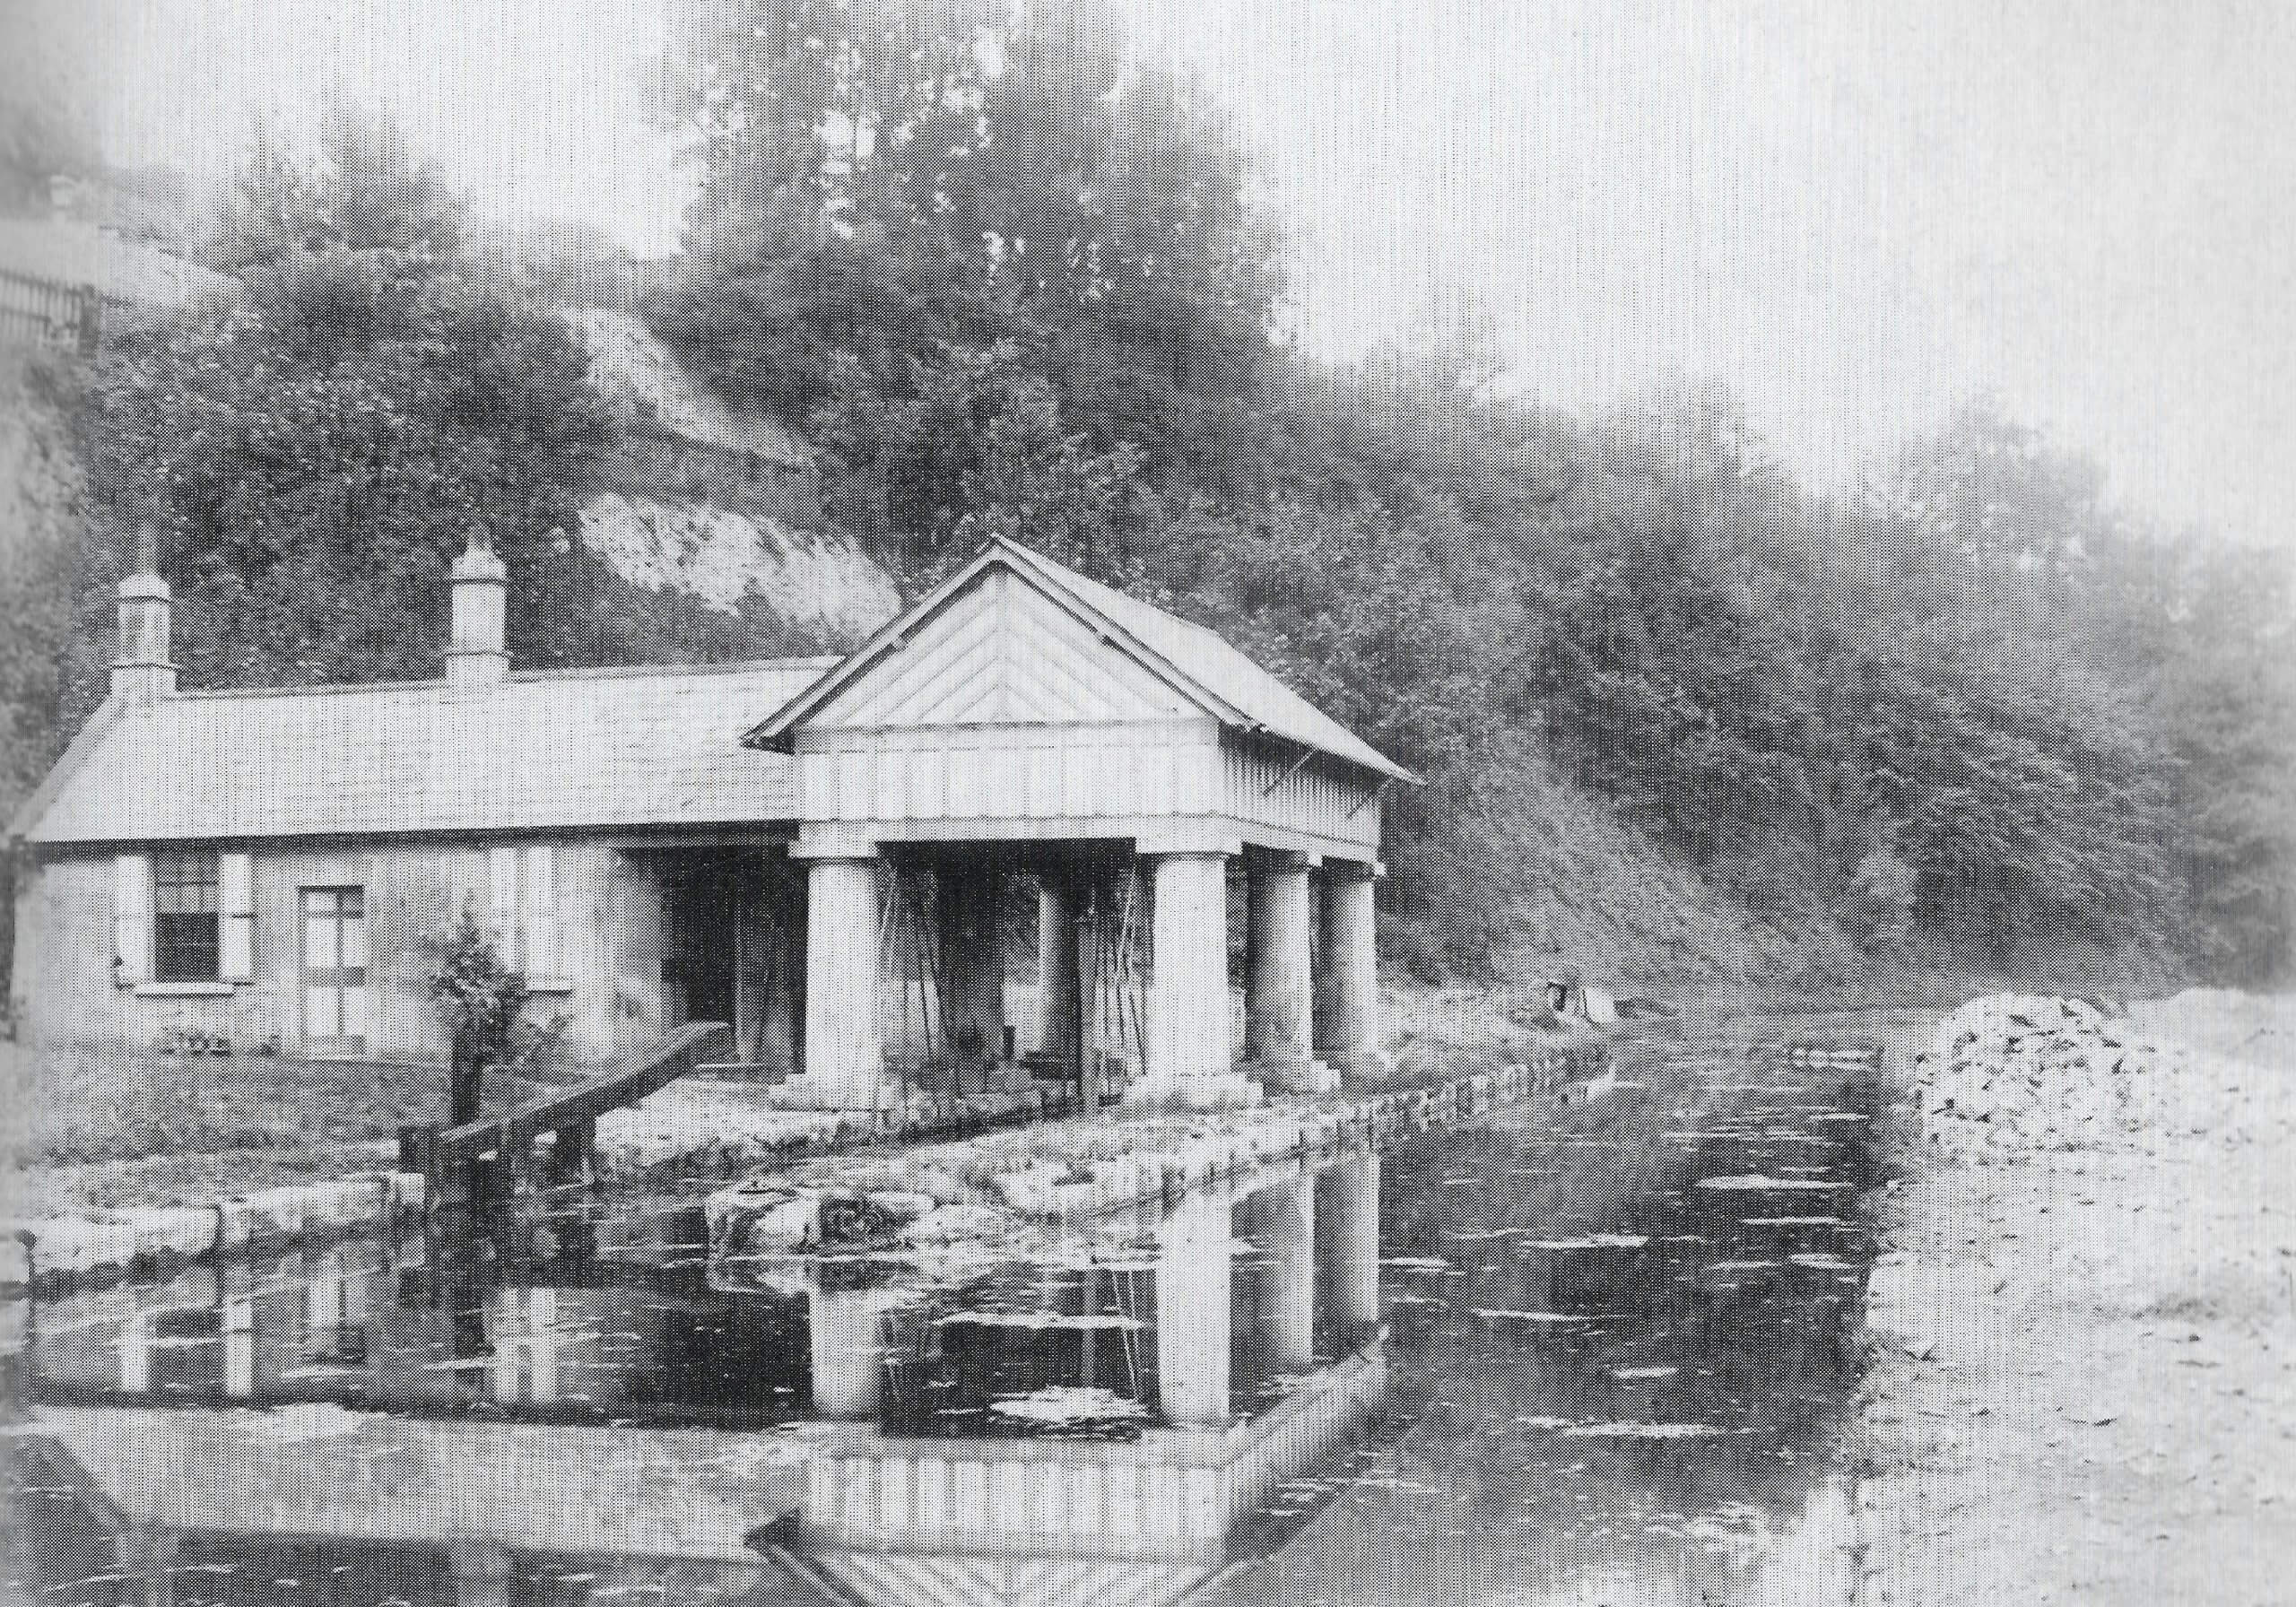 Weigh house for canal at Midford about 1890